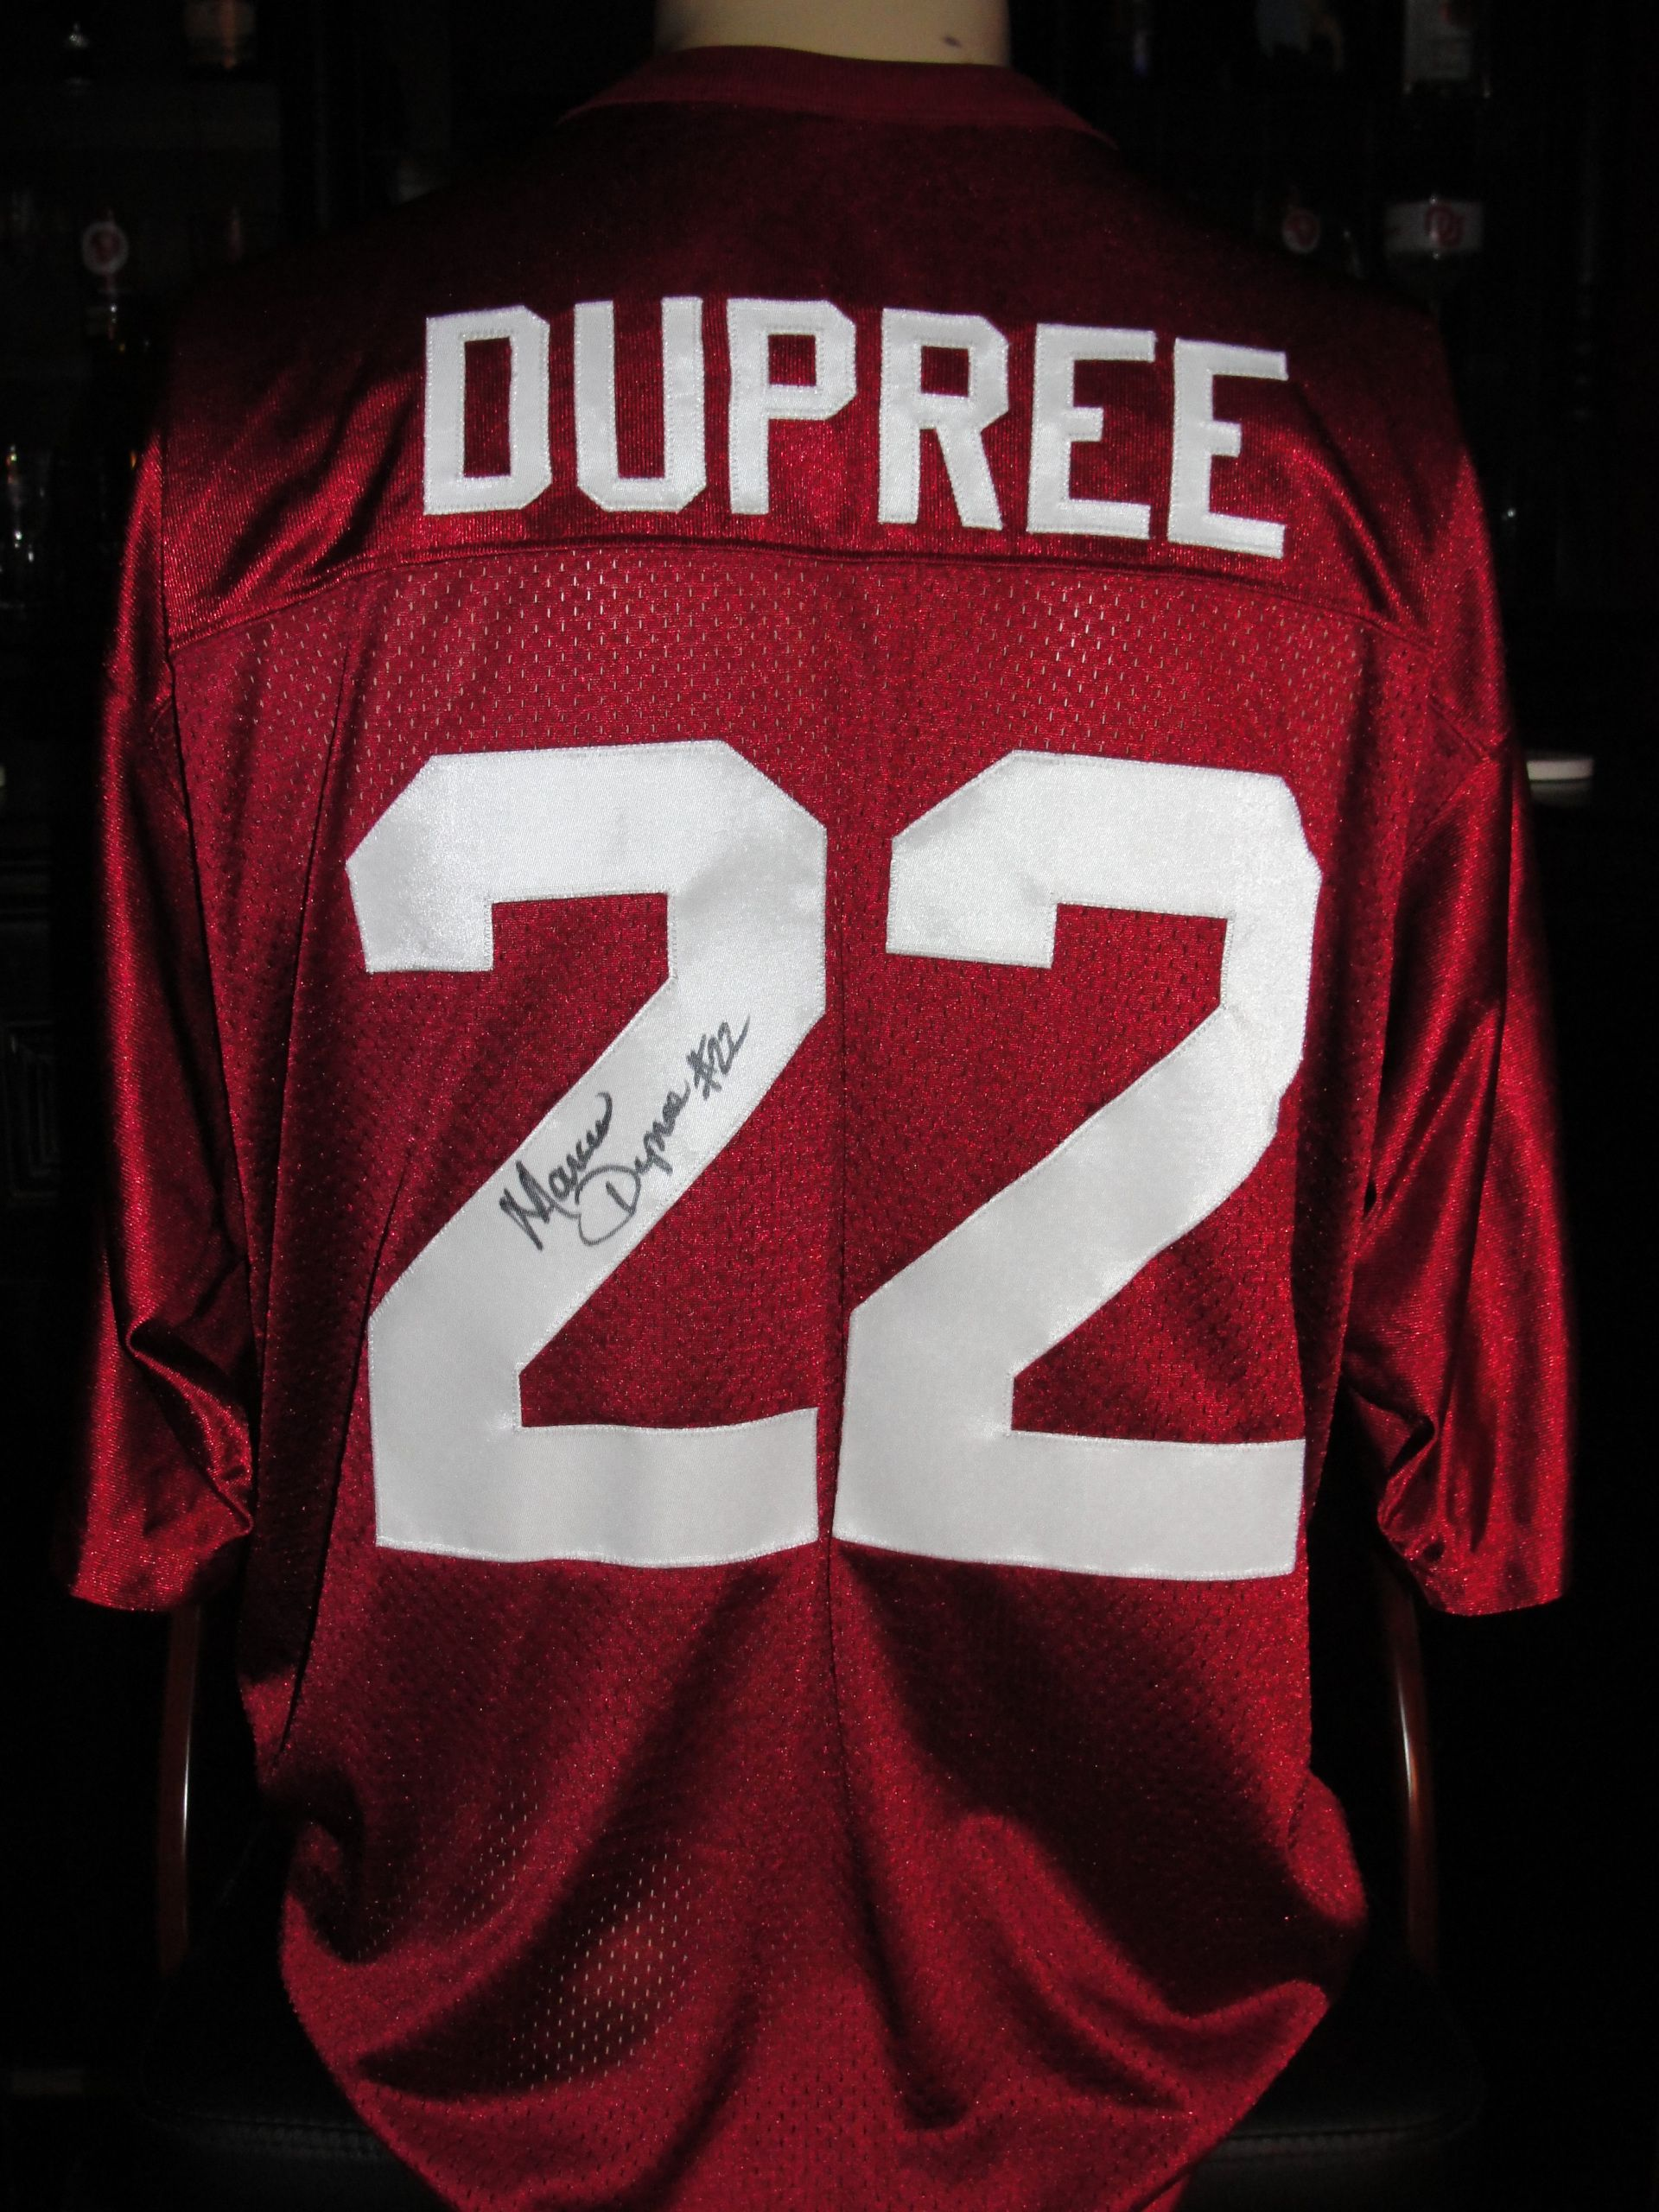 22 marcus dupree autographed jersey sewn s letters